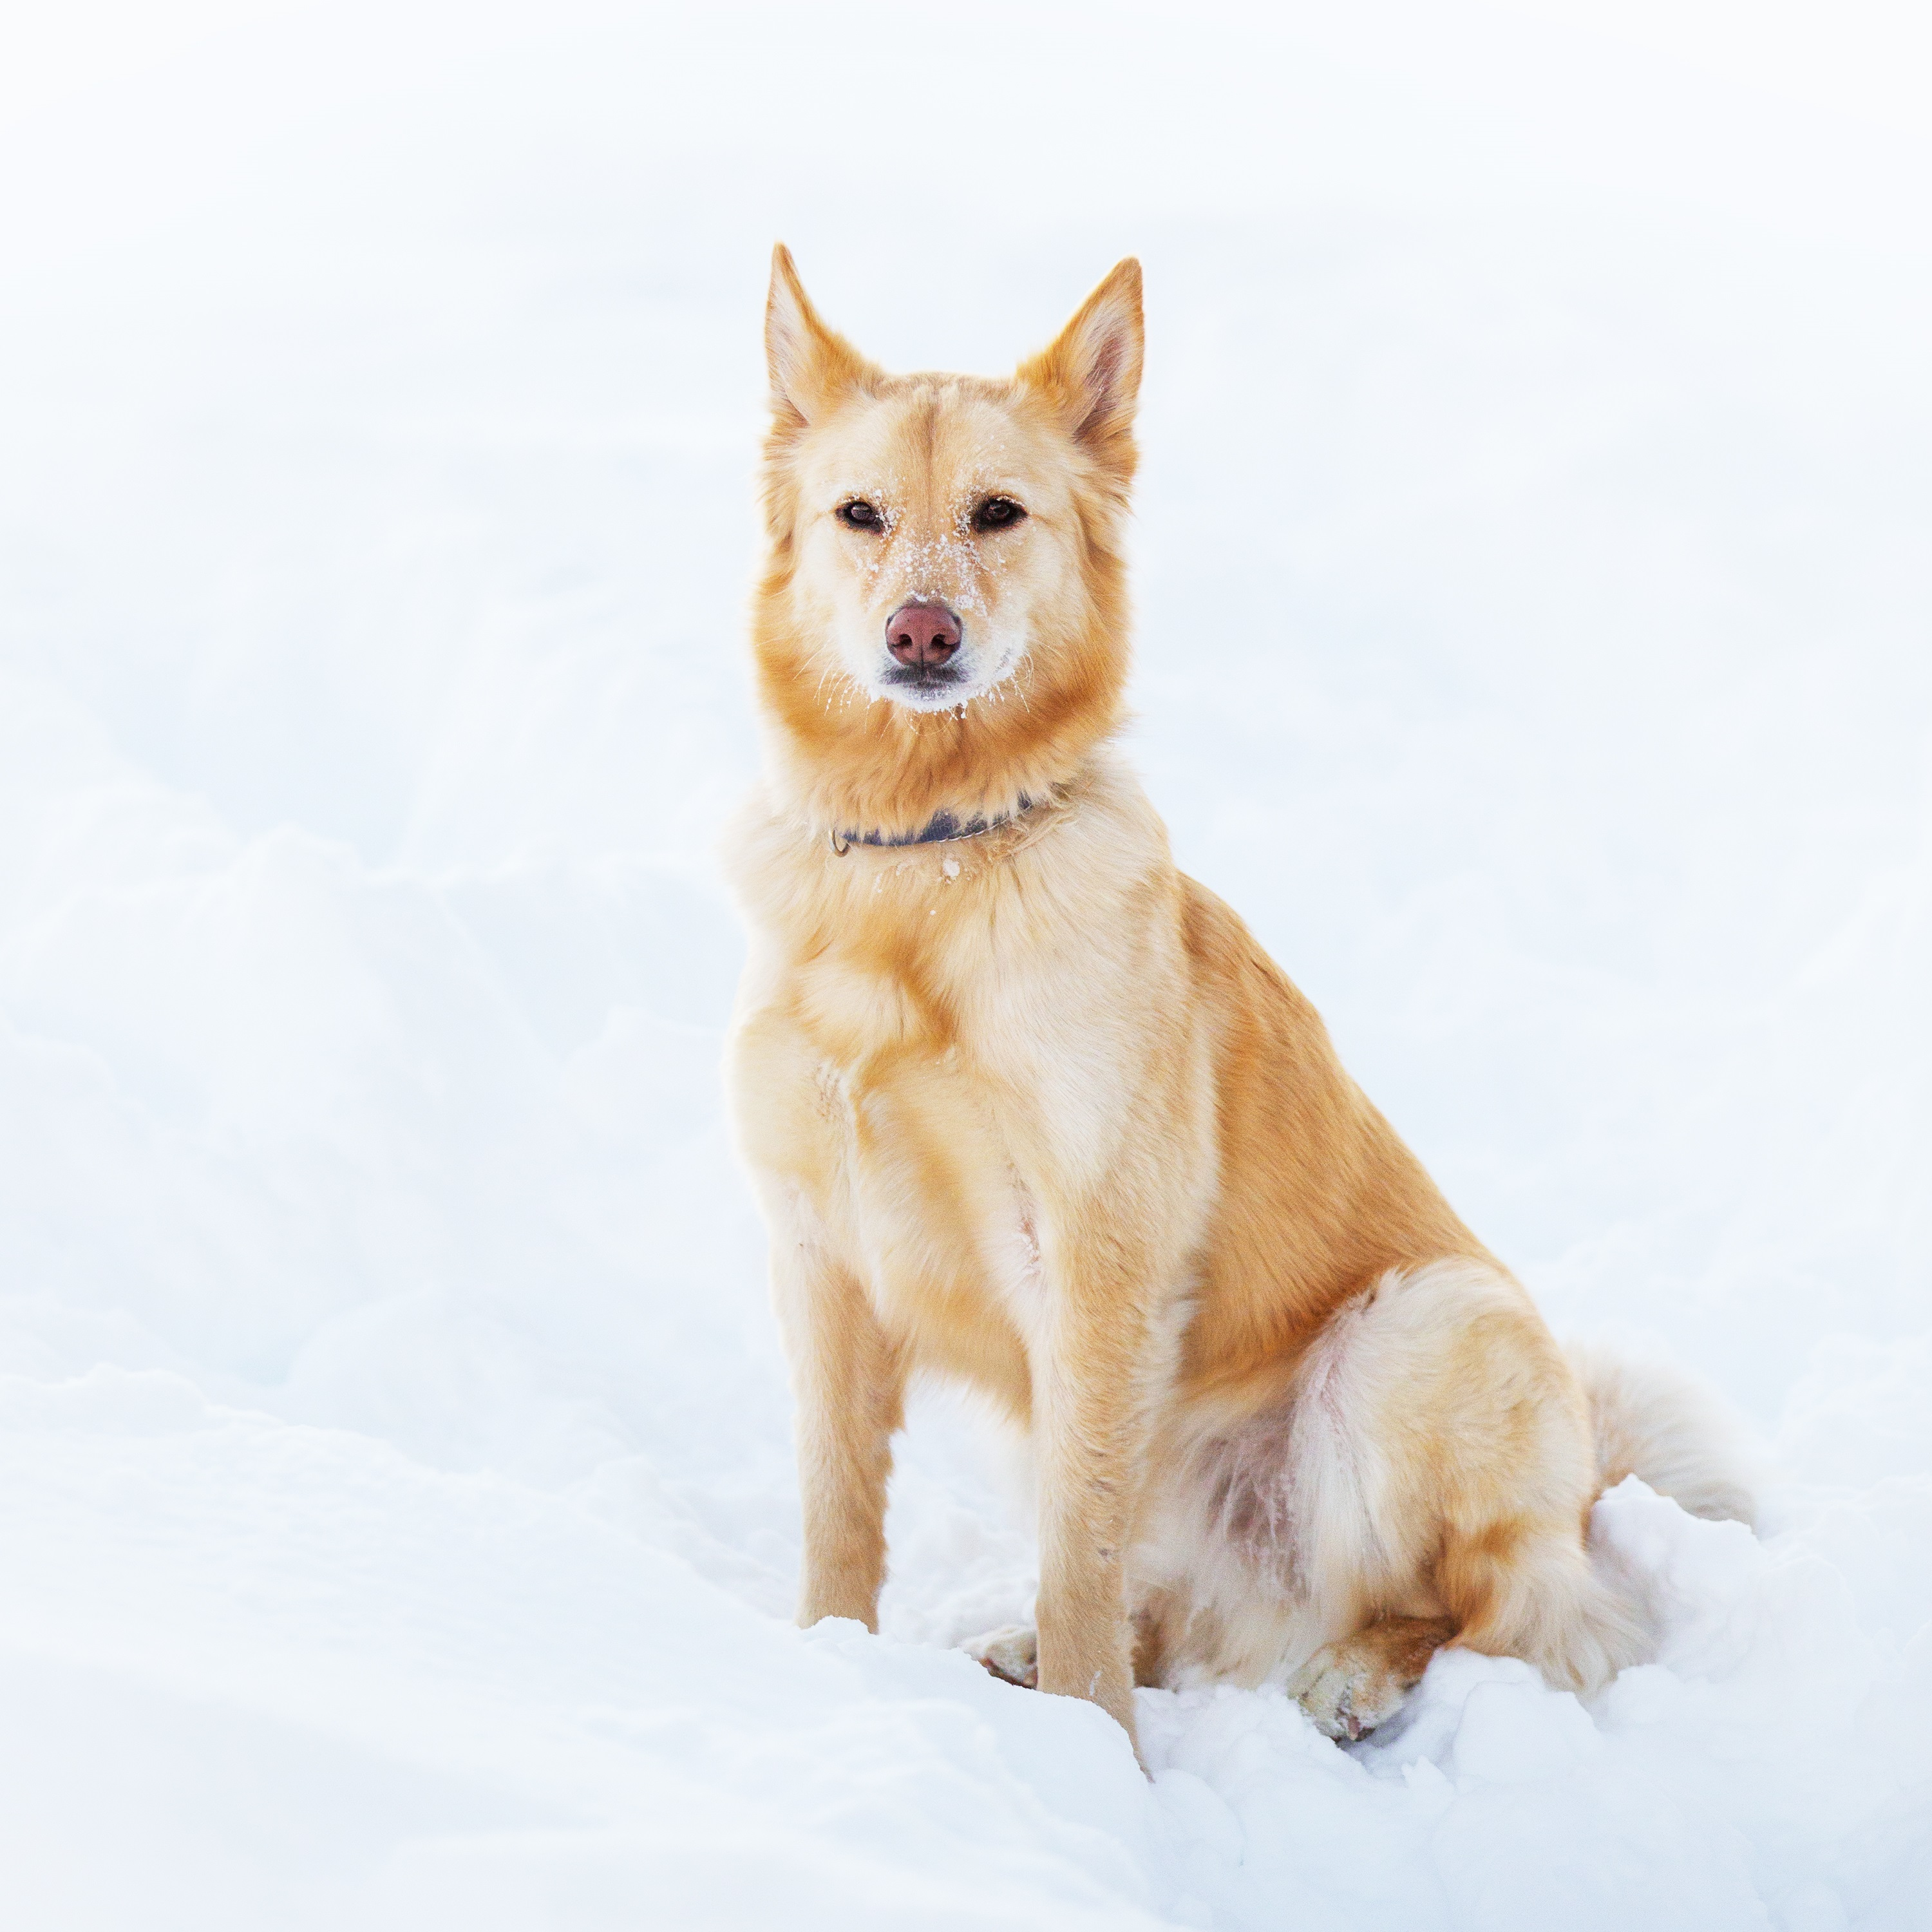 Australian Retriever Mixed Dog Breed Pictures